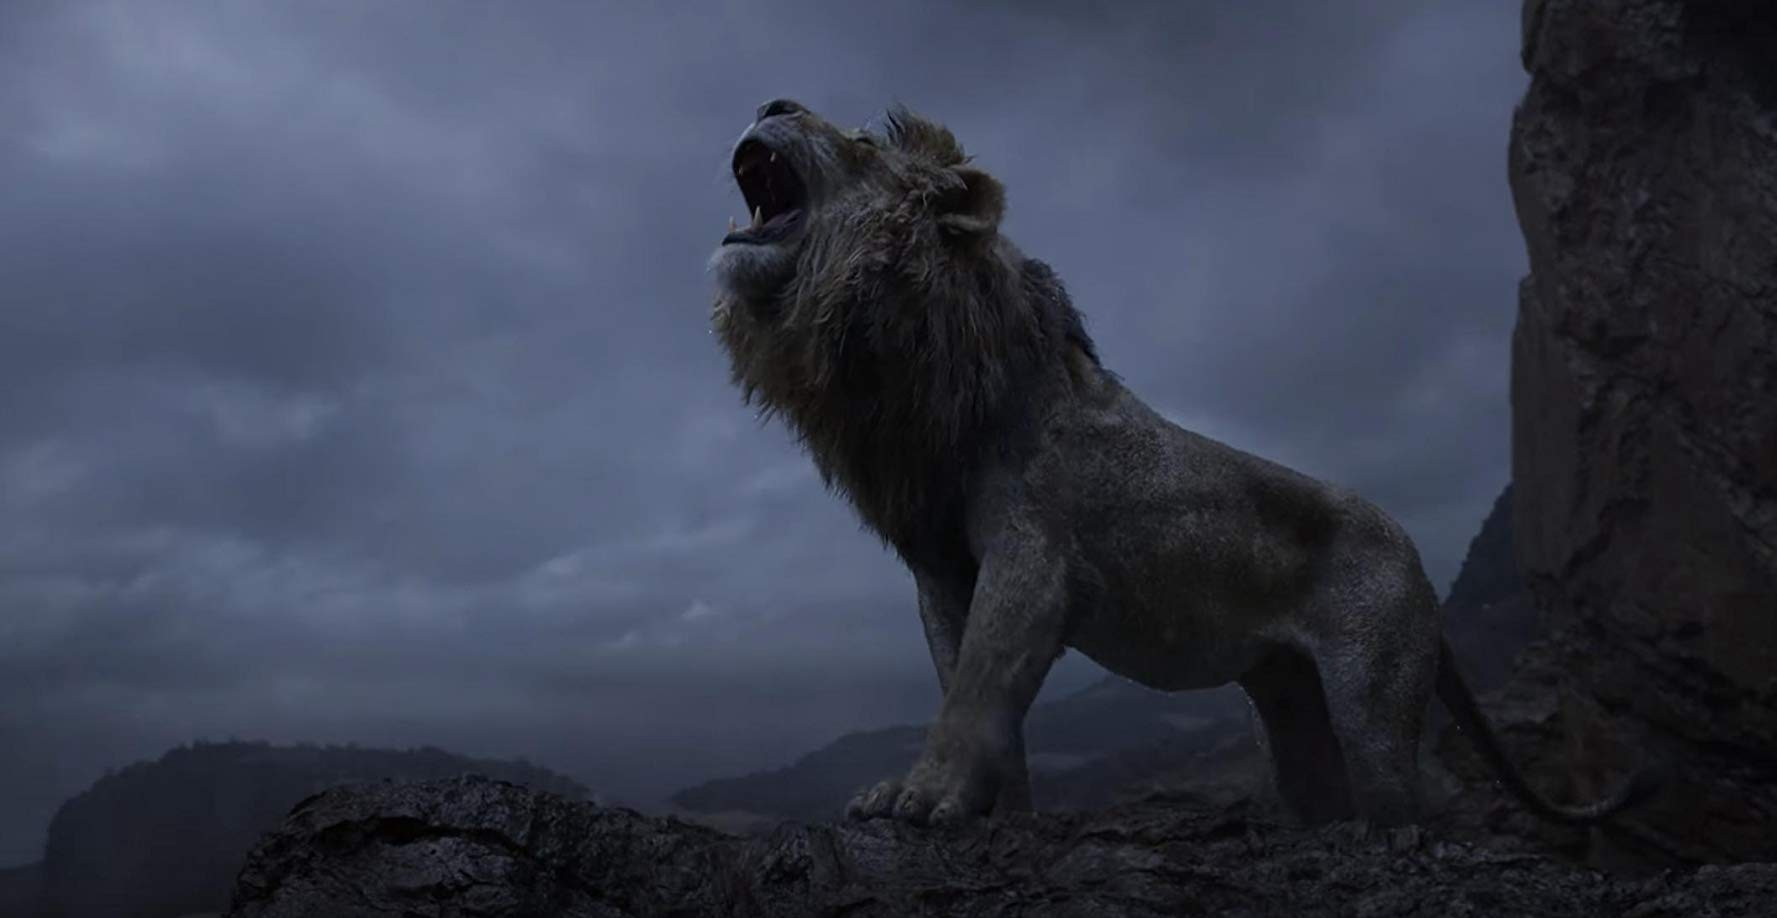 Watch The Lion King 2019 Onlinehd At 4k Watch The